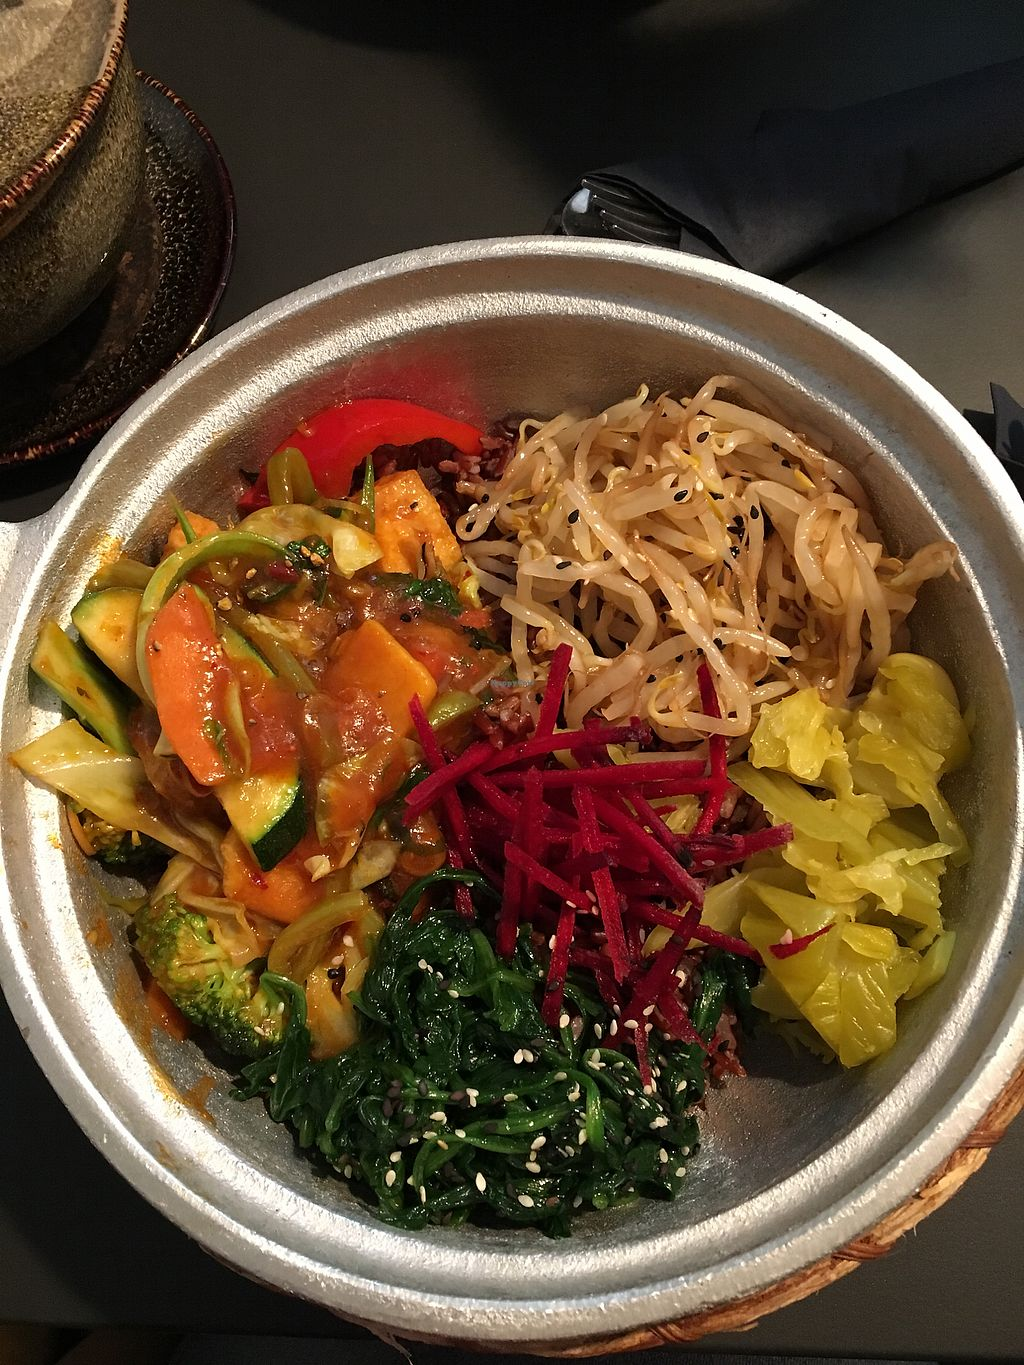 "Photo of Cat Tuong  by <a href=""/members/profile/Yuliya"">Yuliya</a> <br/>Zen bowl: spicy, nourishing and uplifting. (Wild rice) <br/> March 30, 2018  - <a href='/contact/abuse/image/53569/378238'>Report</a>"